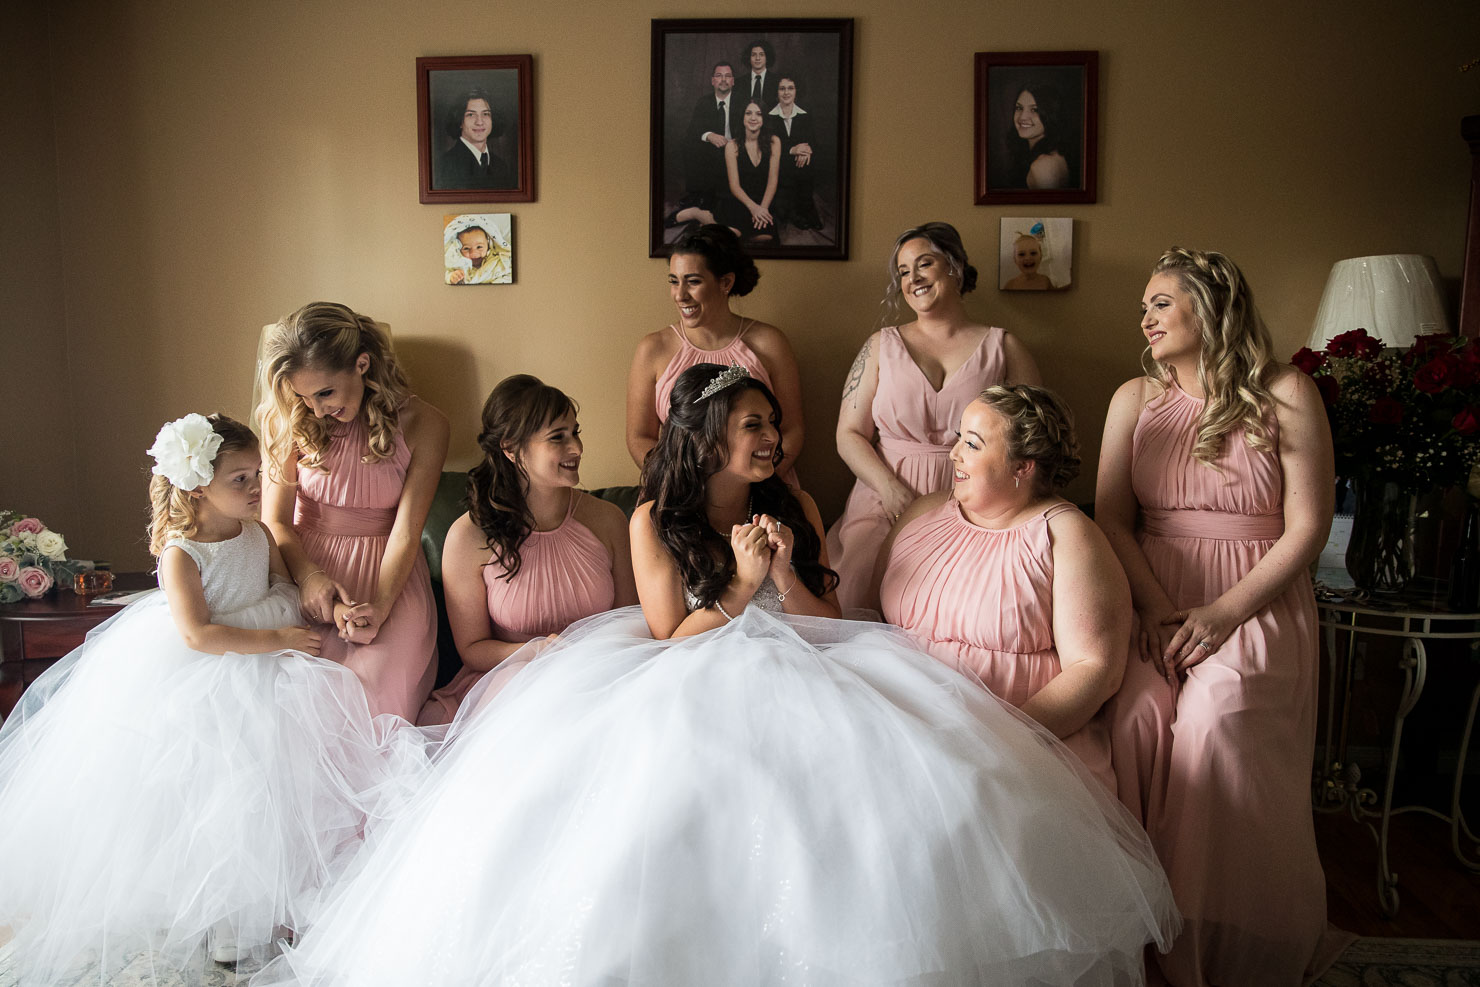 bride, bridesmaids, wedding, sudbury wedding, akaiserphoto, wedding photographer